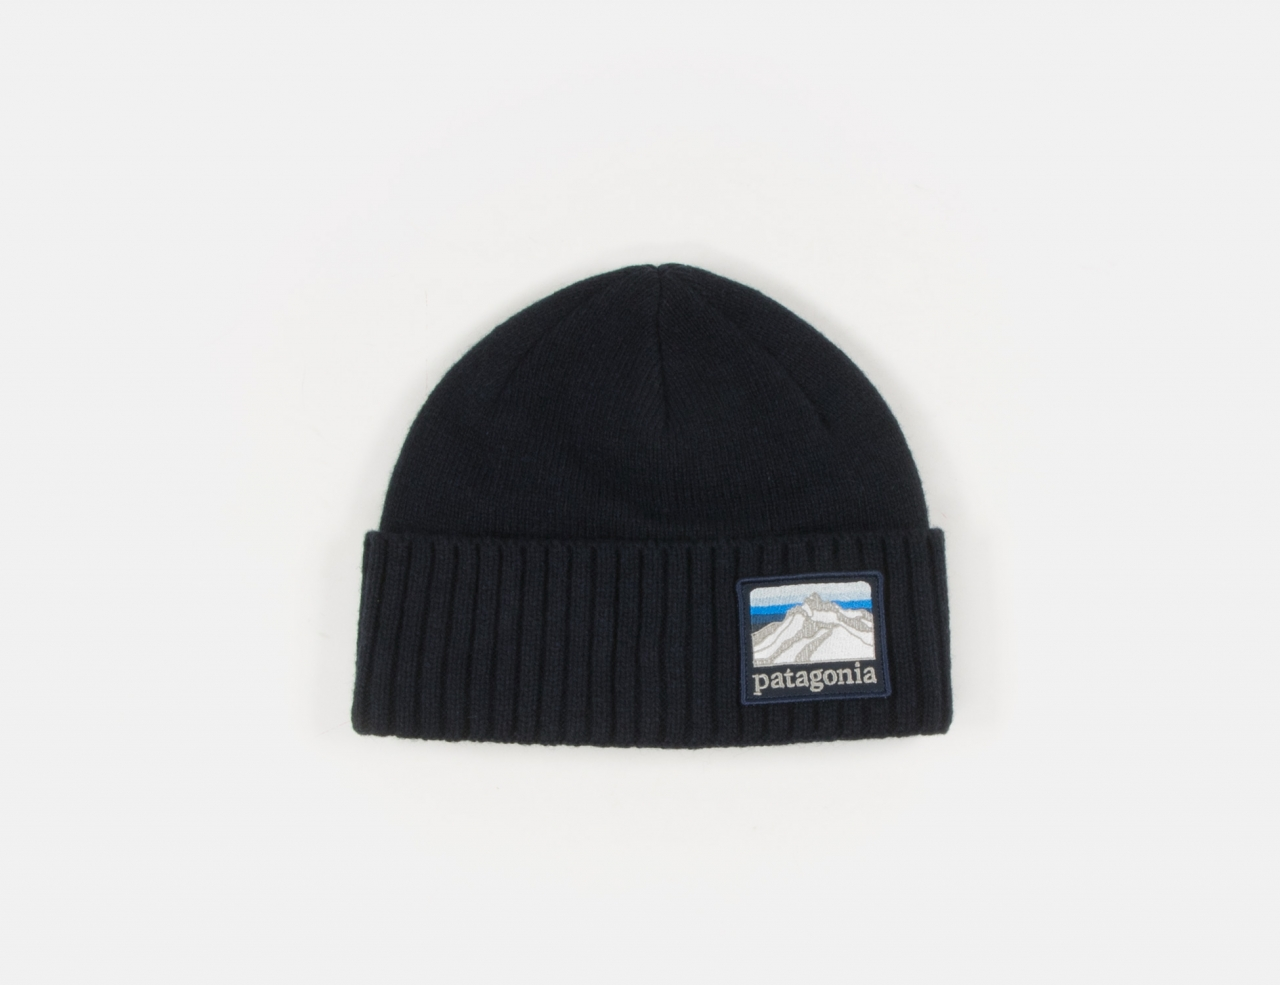 Patagonia Brodeo Beanie - Classic Navy